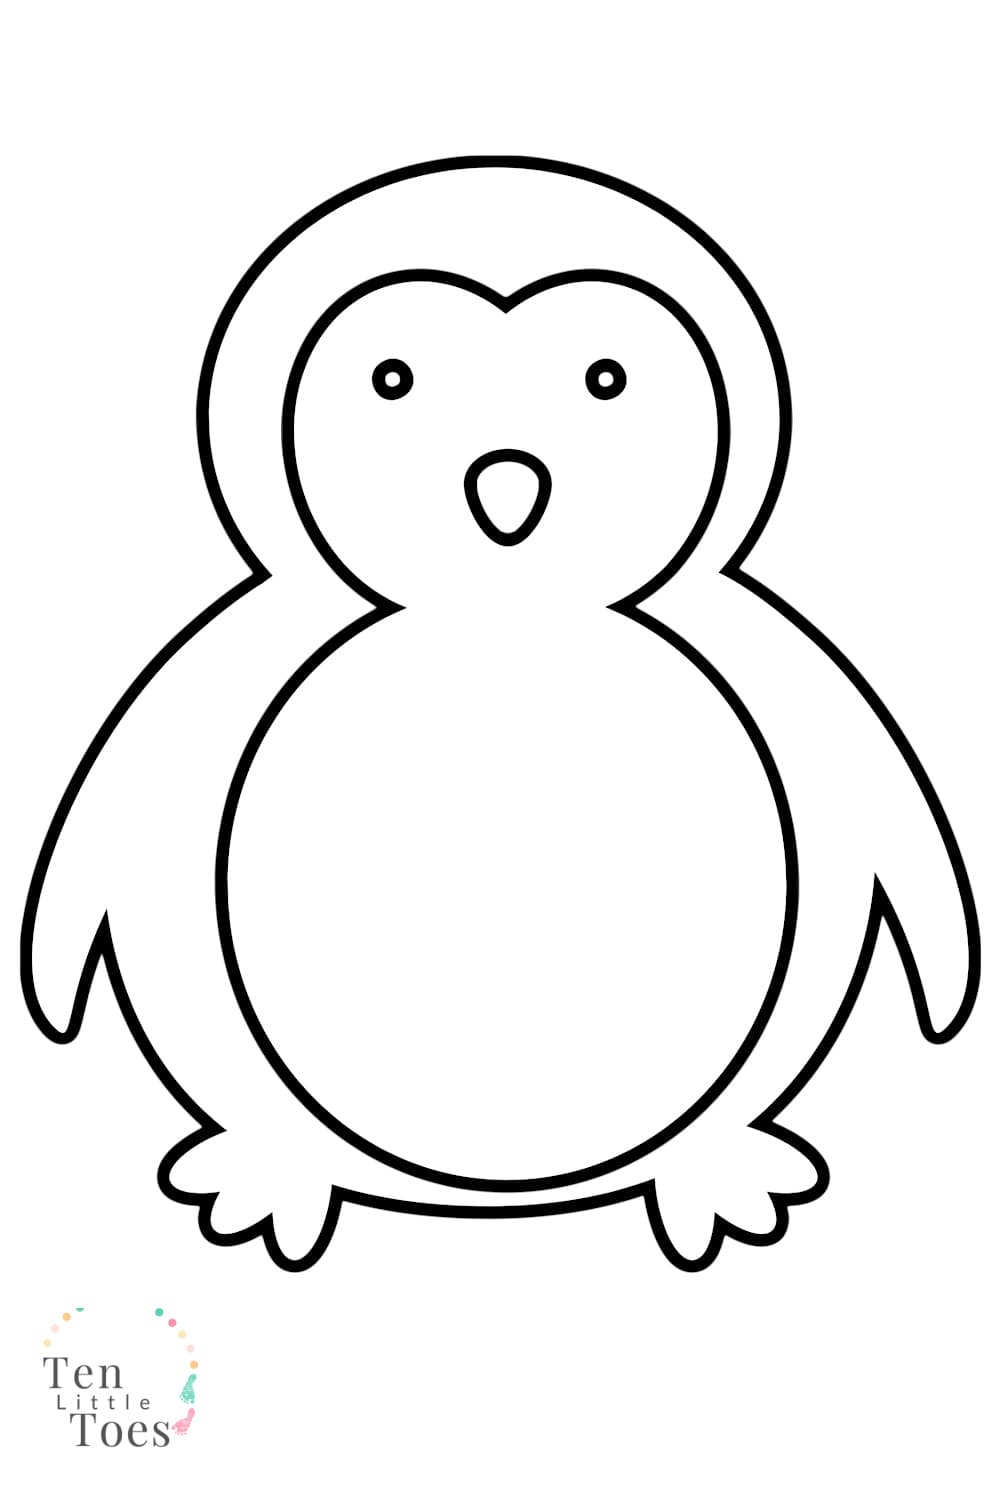 penguins pictures to print get this penguin coloring pages printable 90471 to print penguins pictures